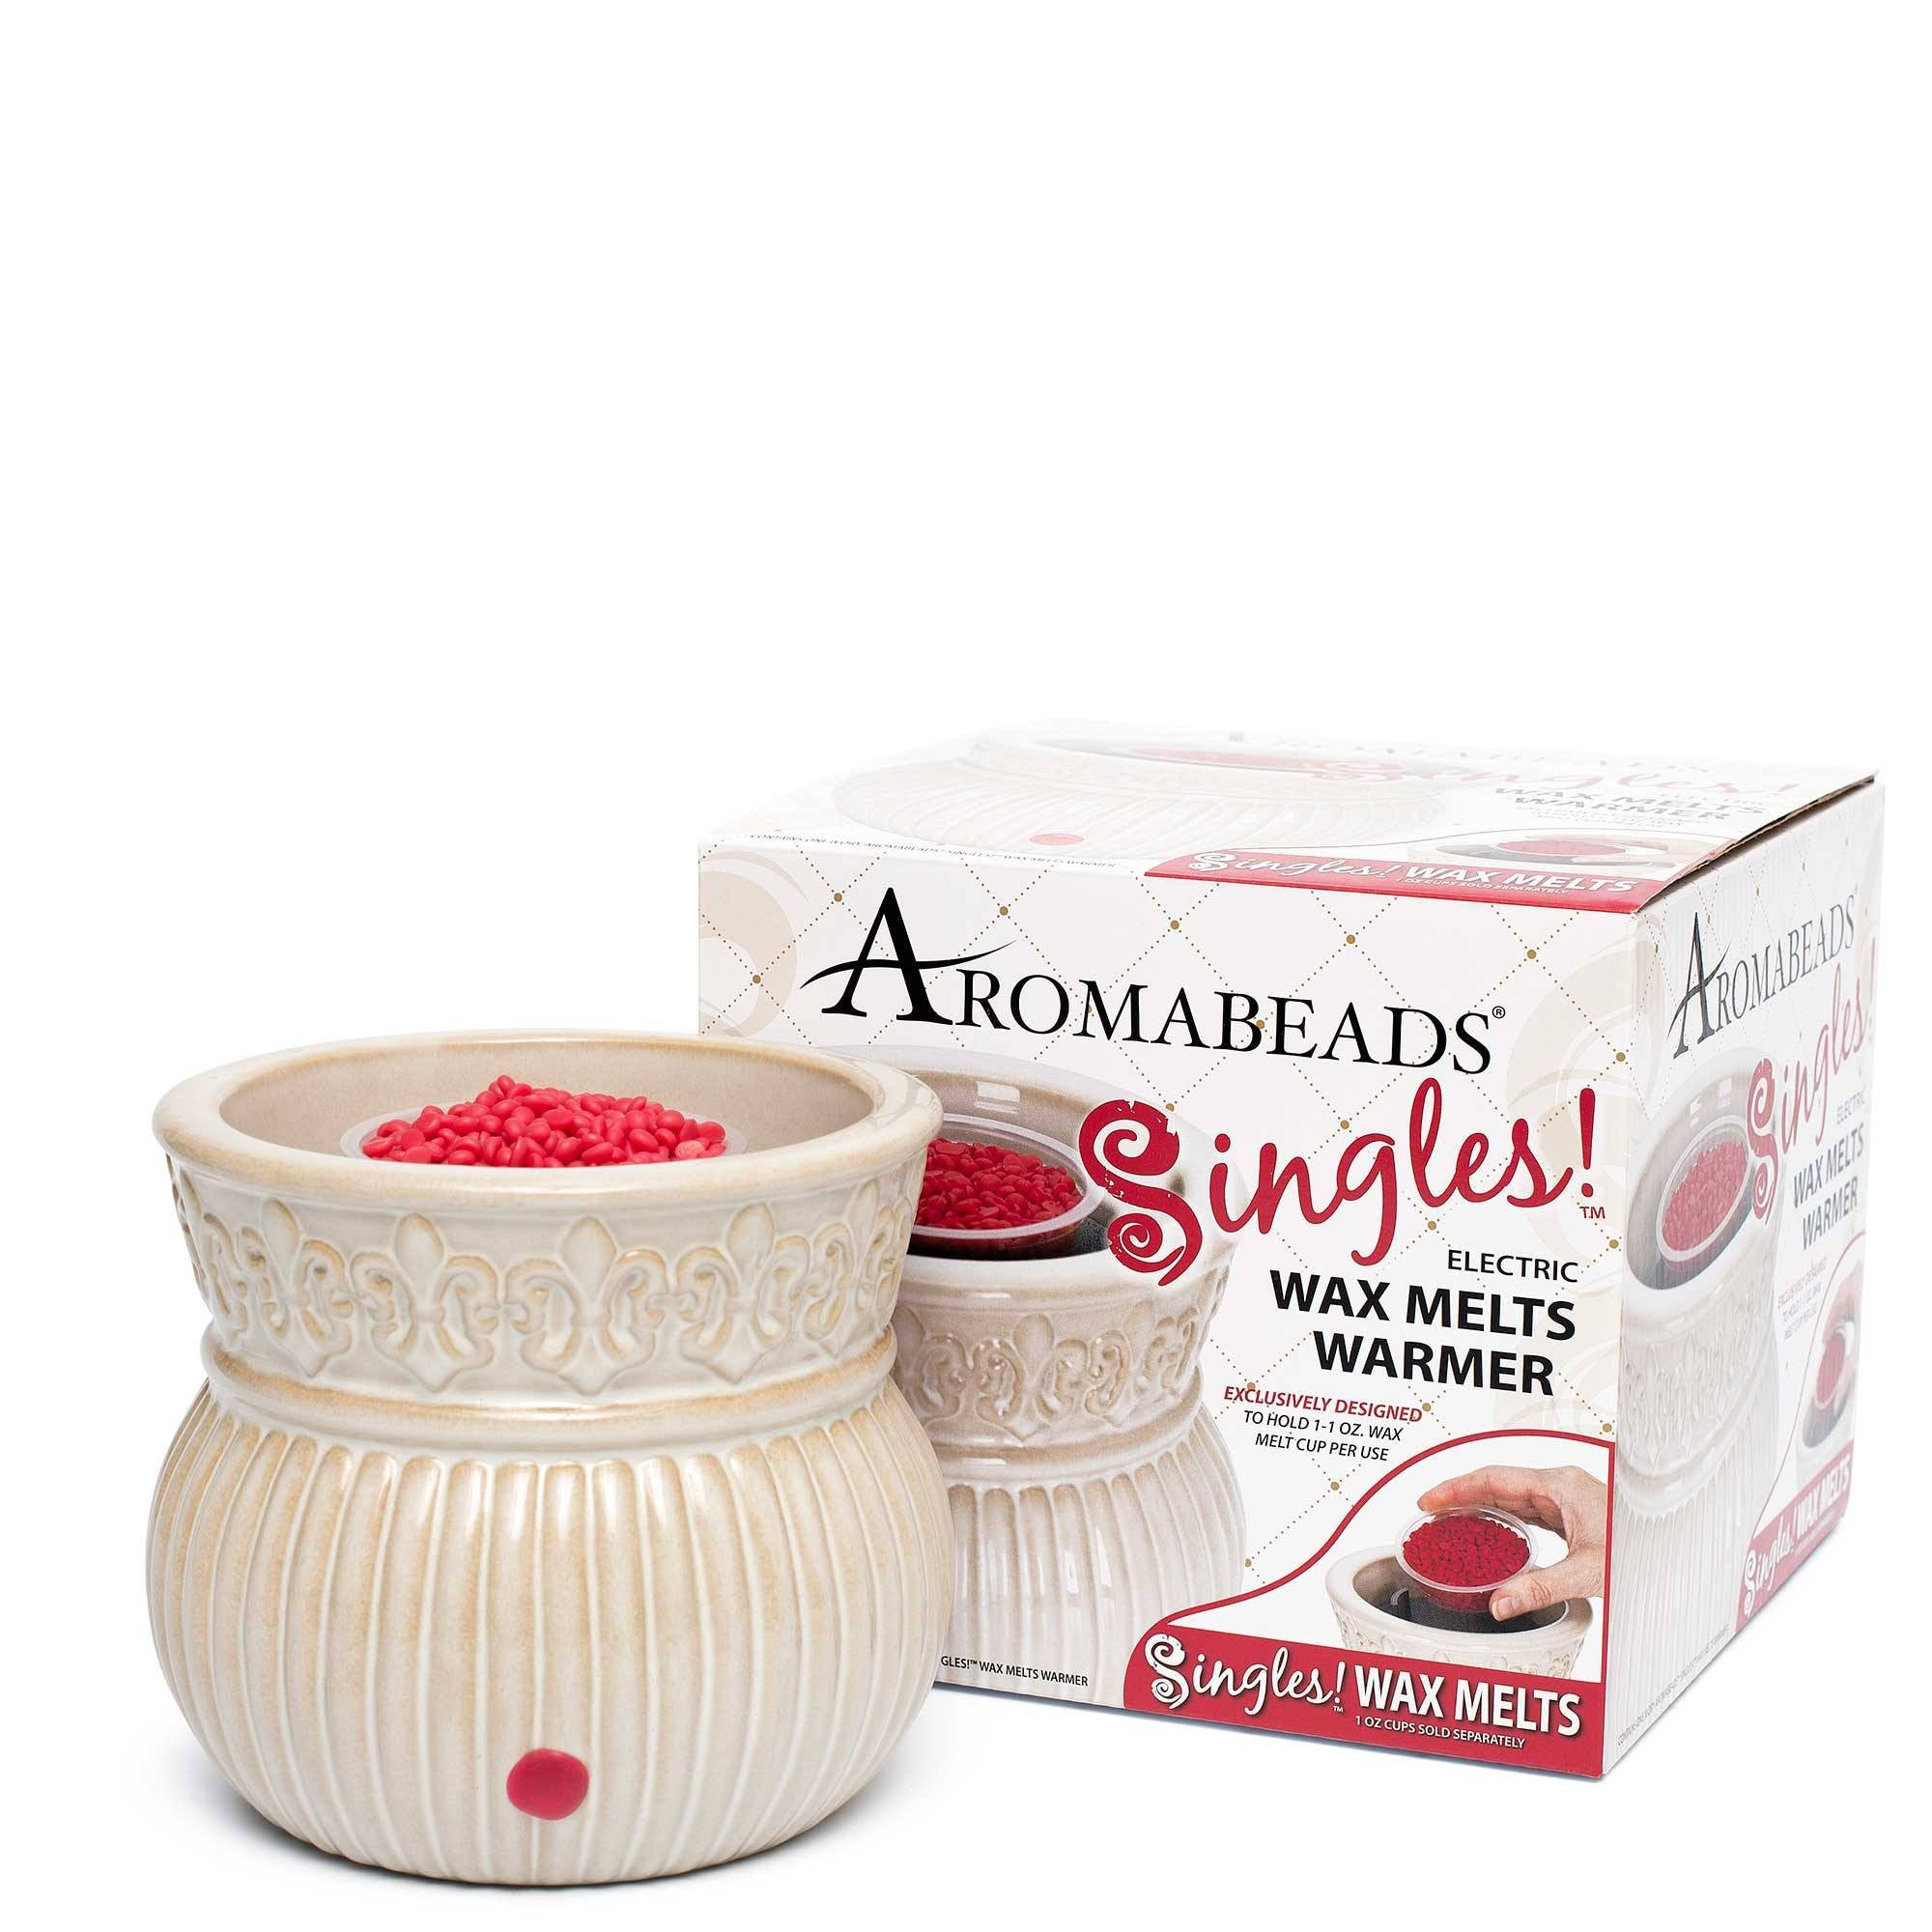 Aromabeads Singles Juicy Apple Pomegranate Scented Wax Melts - Candlemart.com - 3